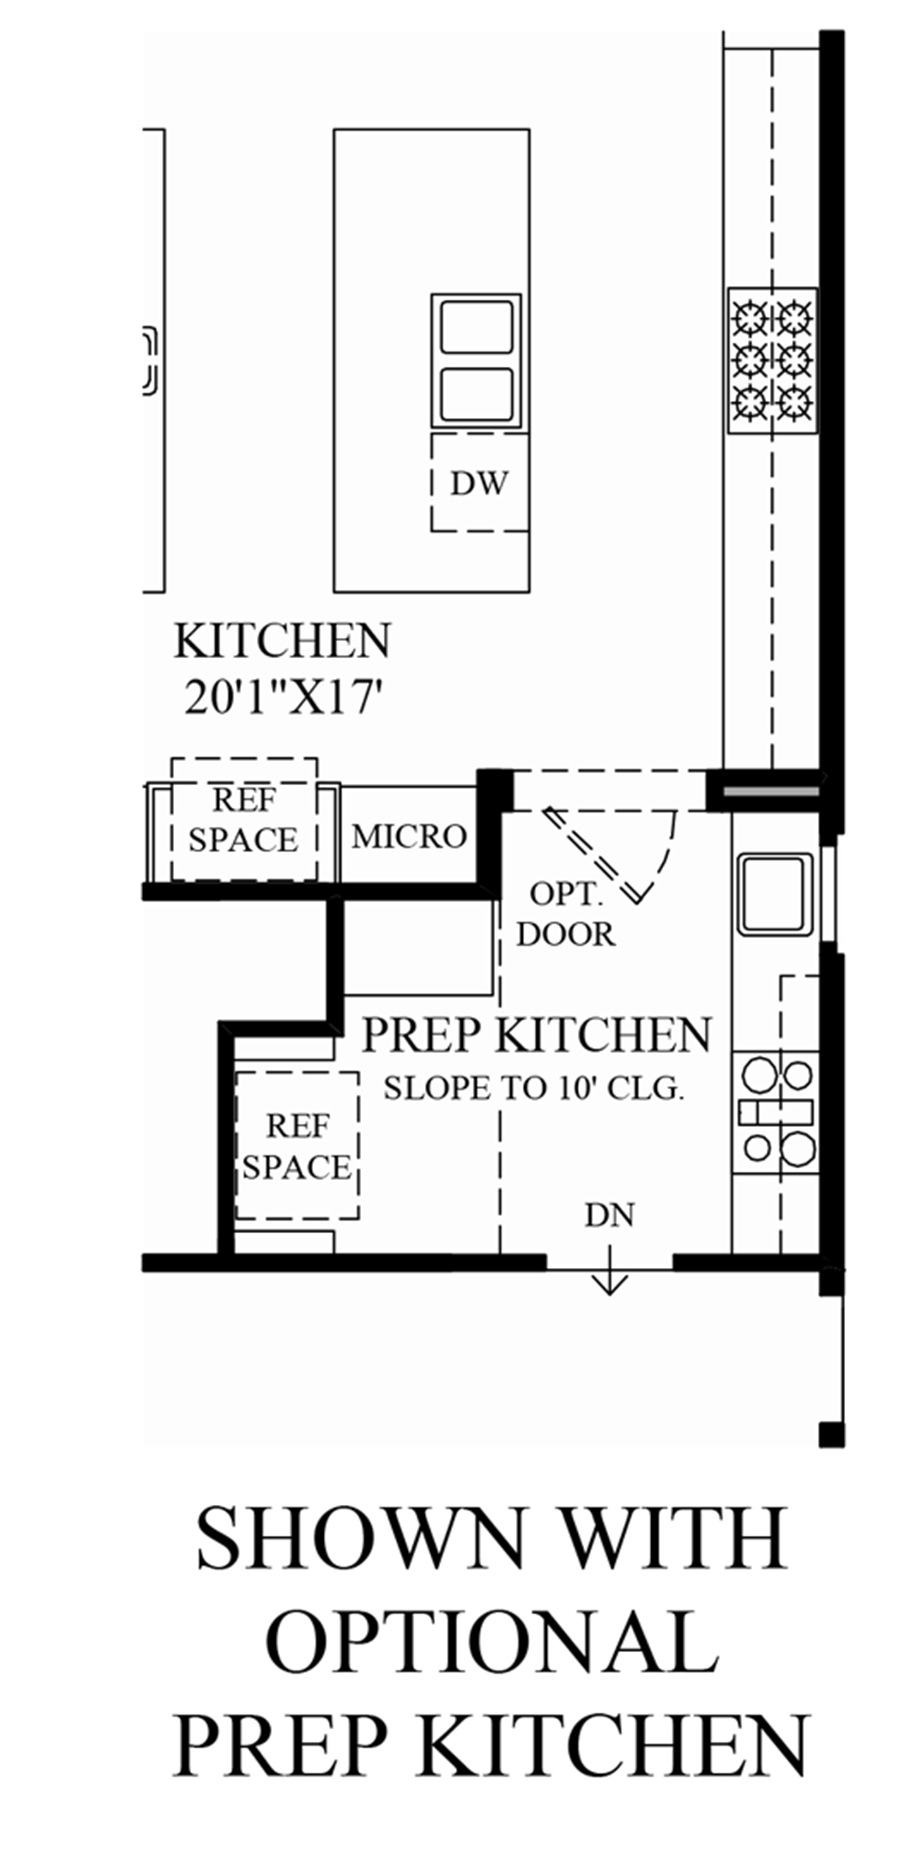 Optional Prep Kitchen Floor Plan